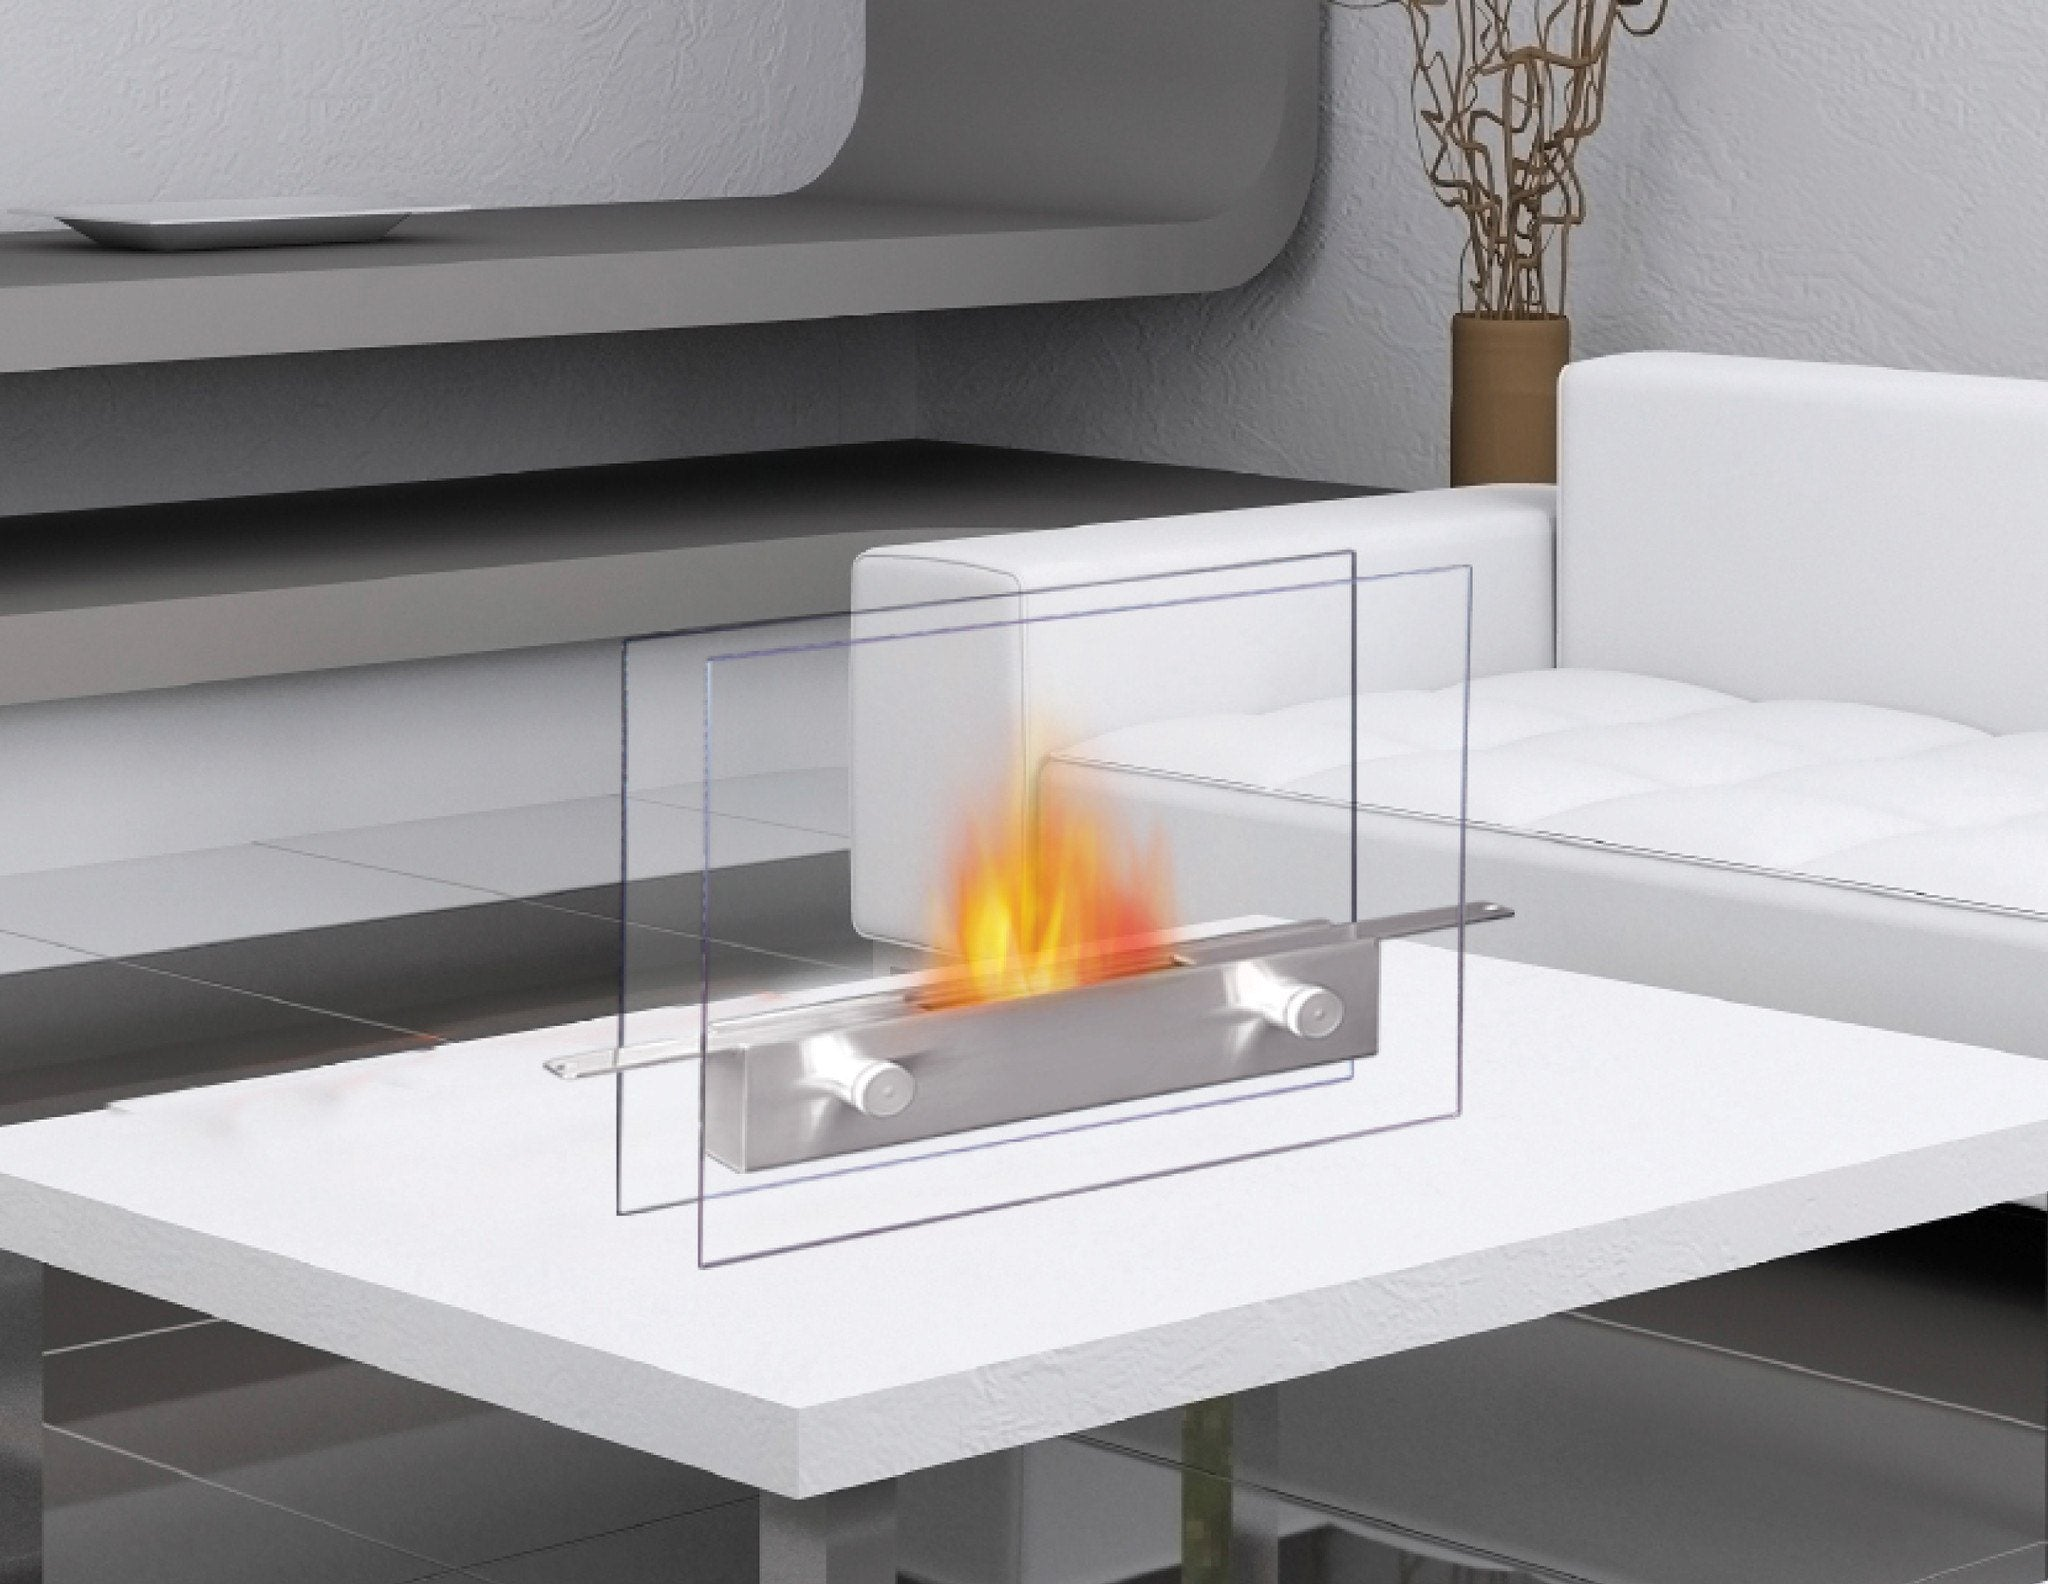 "Metropolitan 14"" Tabletop Fireplace. Manufactured By Anywhere Fireplace. Ventless. Stunning Stainless Steel And Glass Design. Sure To Delight Your Guests."